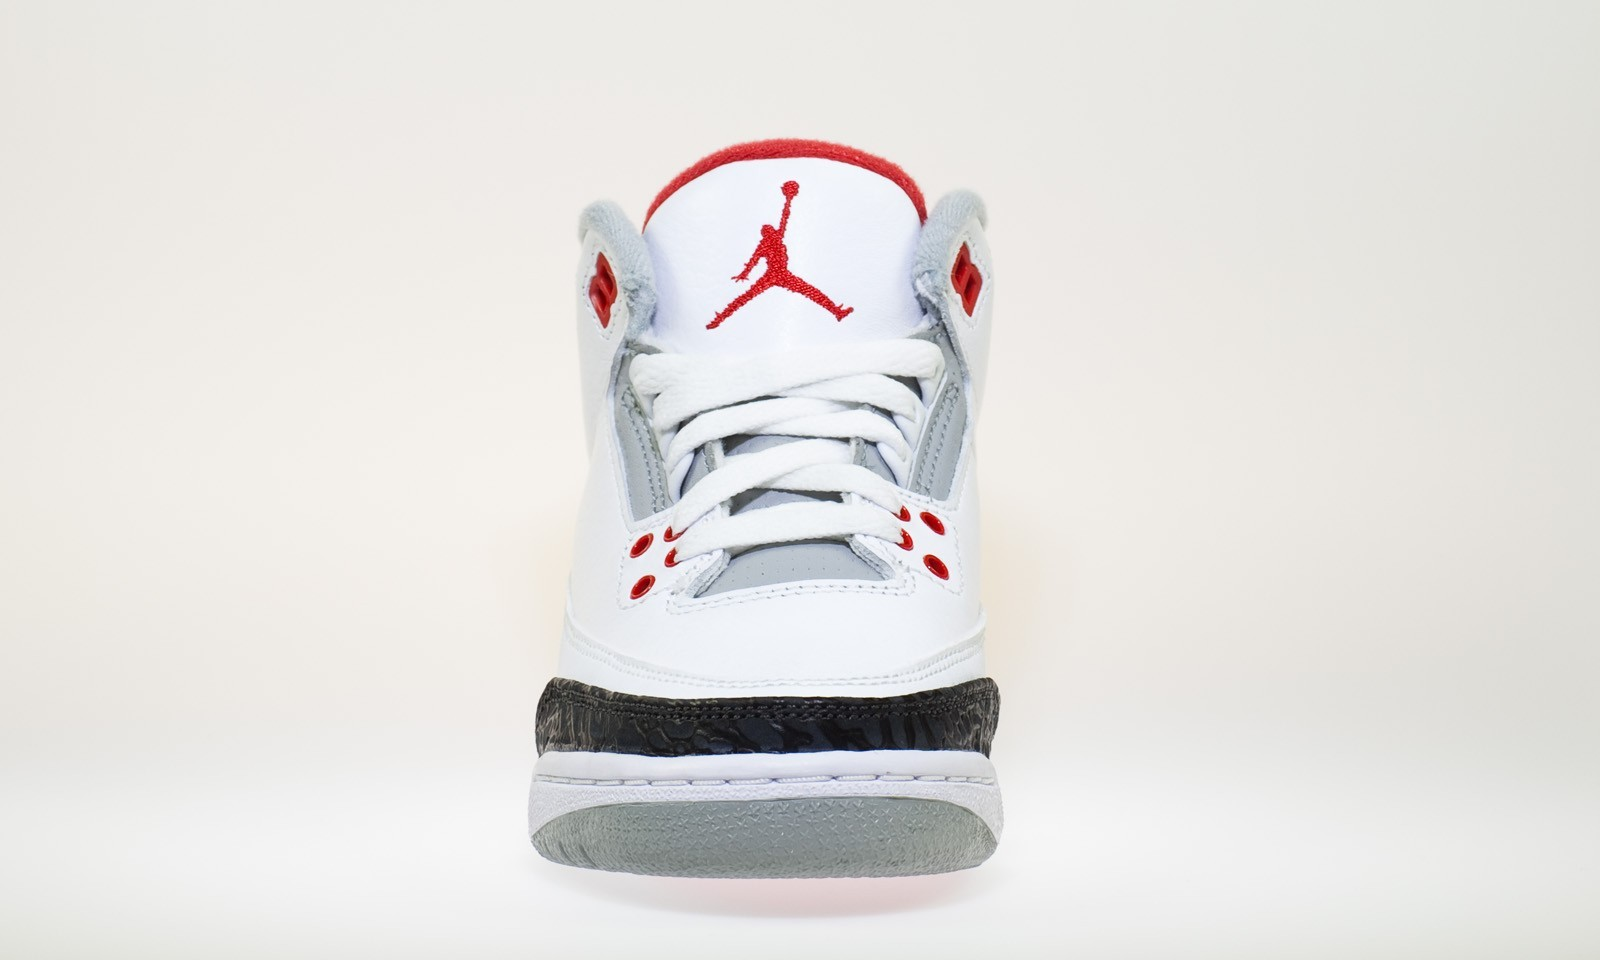 finest selection e9126 b0a79 ... Air Jordan 3(III) Retro - GS - White Fire Red Neutral Grey Black ...